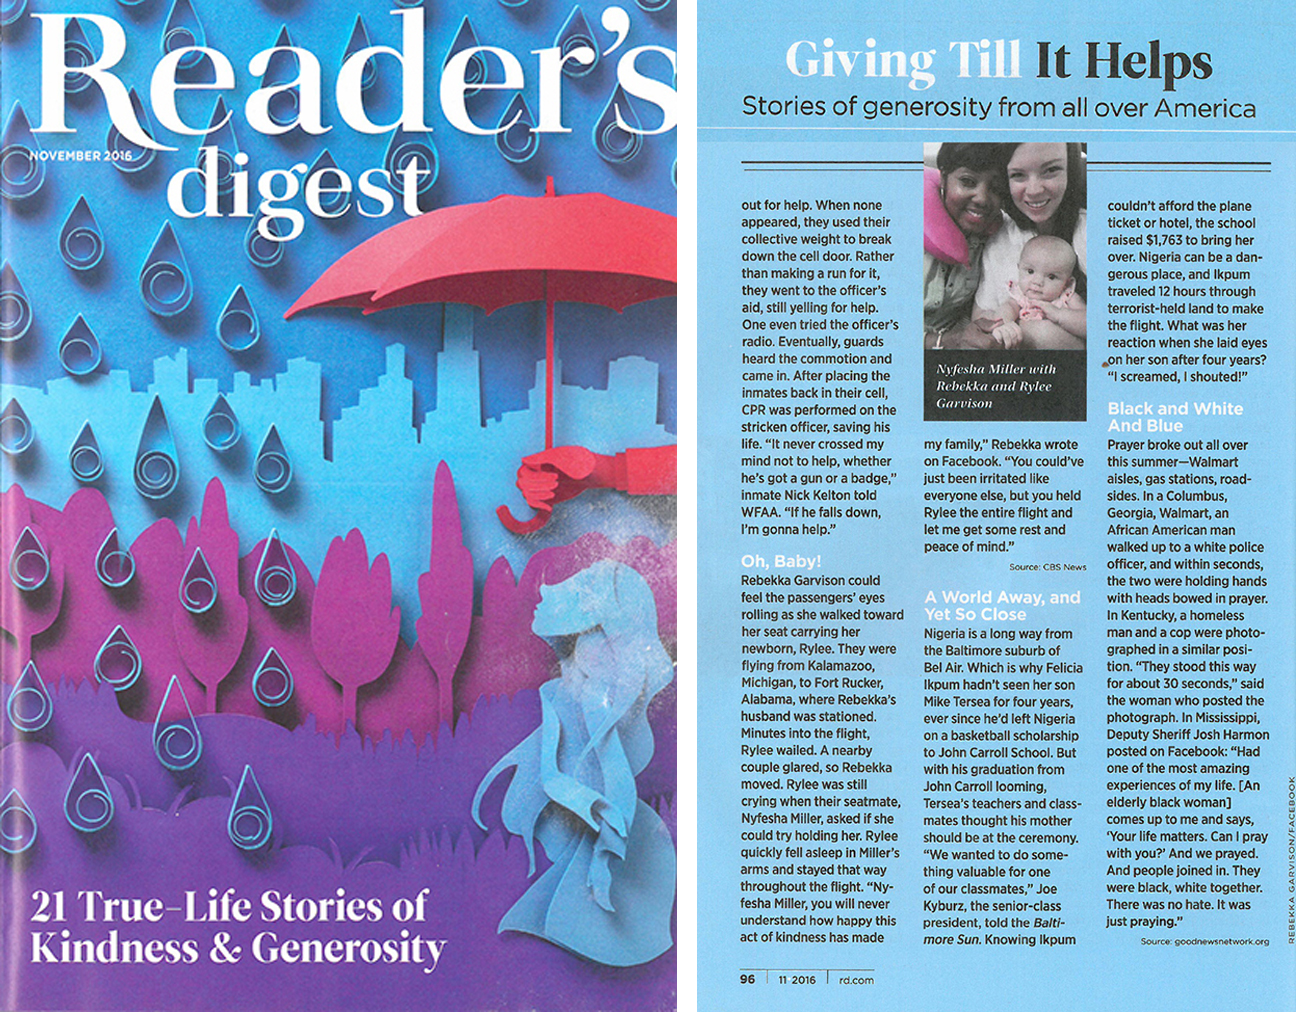 Tertsea Reader's Digest Article